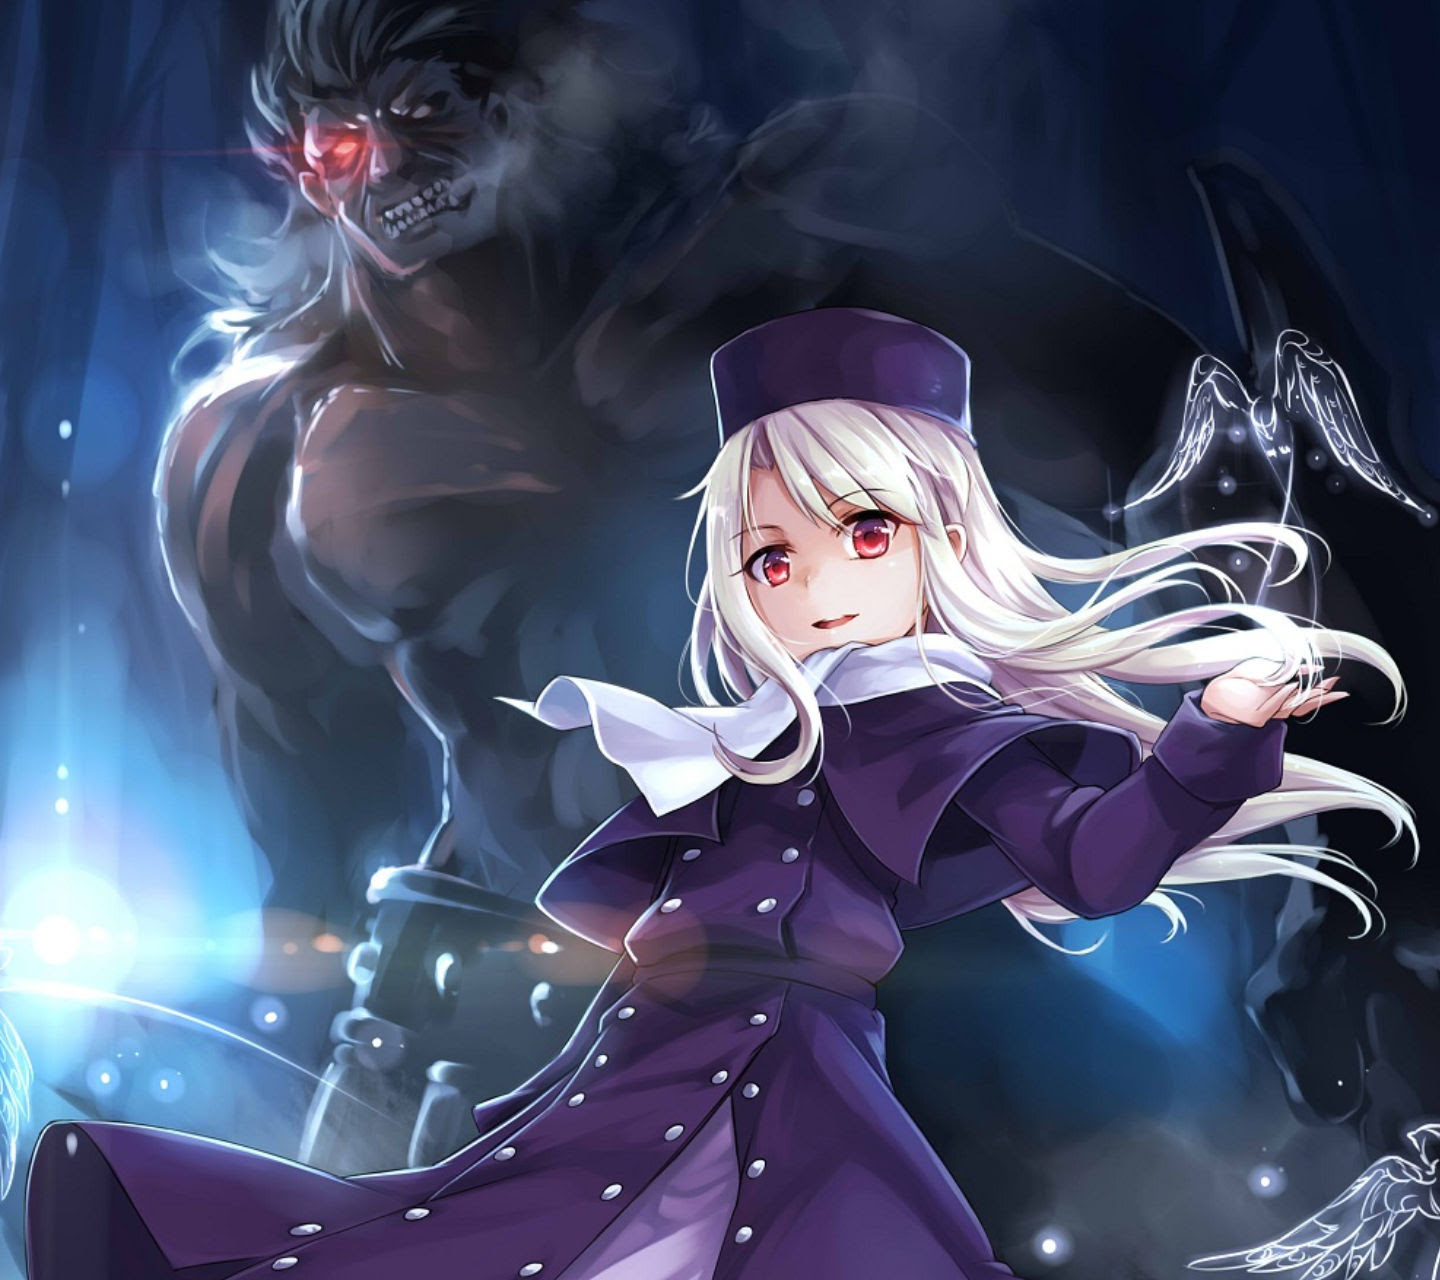 Fate Stay Night Android壁紙 画像 7 1440 1280 アニメ壁紙